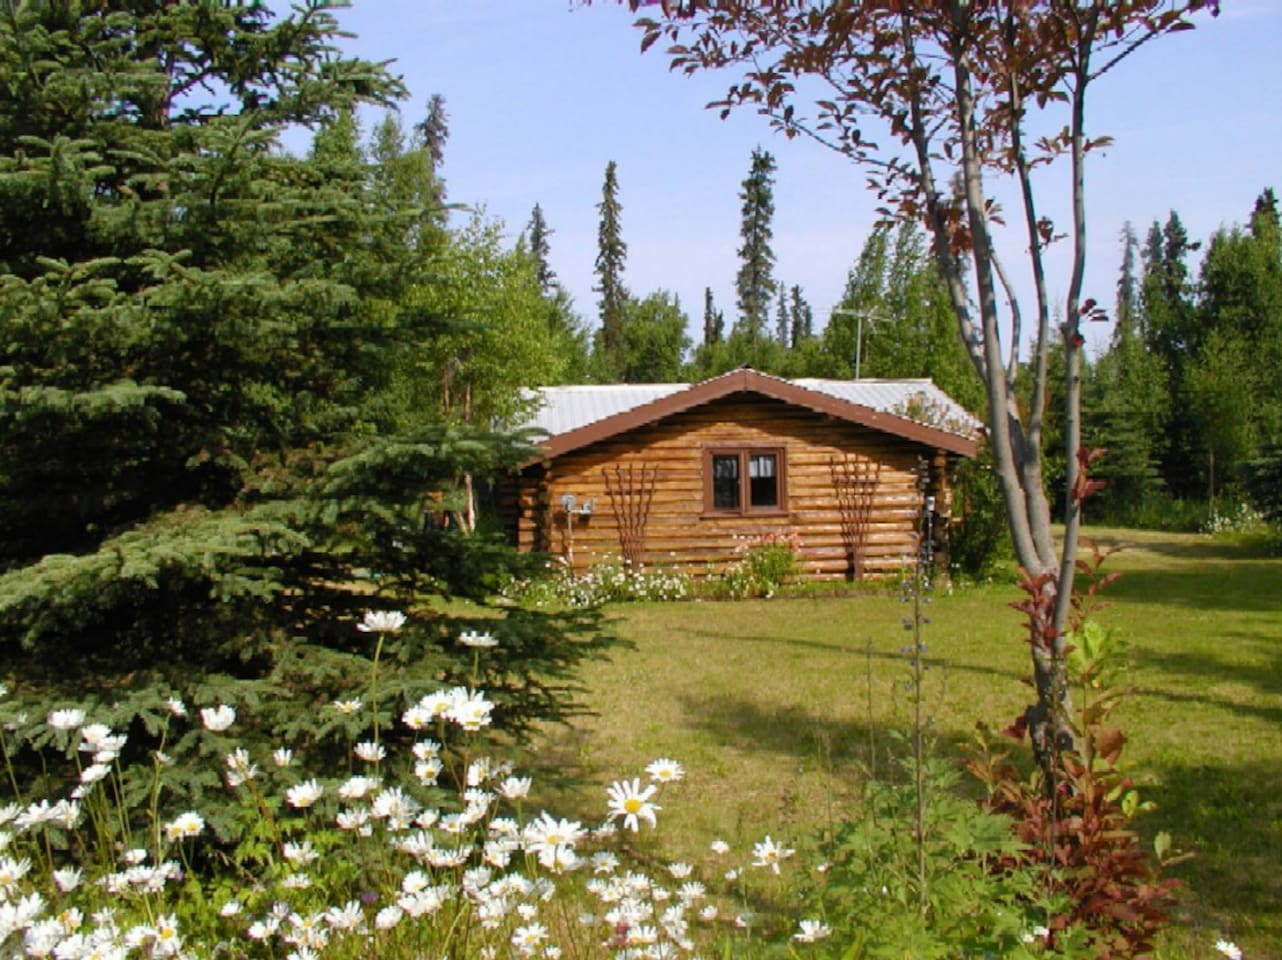 A cozy Alaskan cabin nestled in the woods on Hope Lake